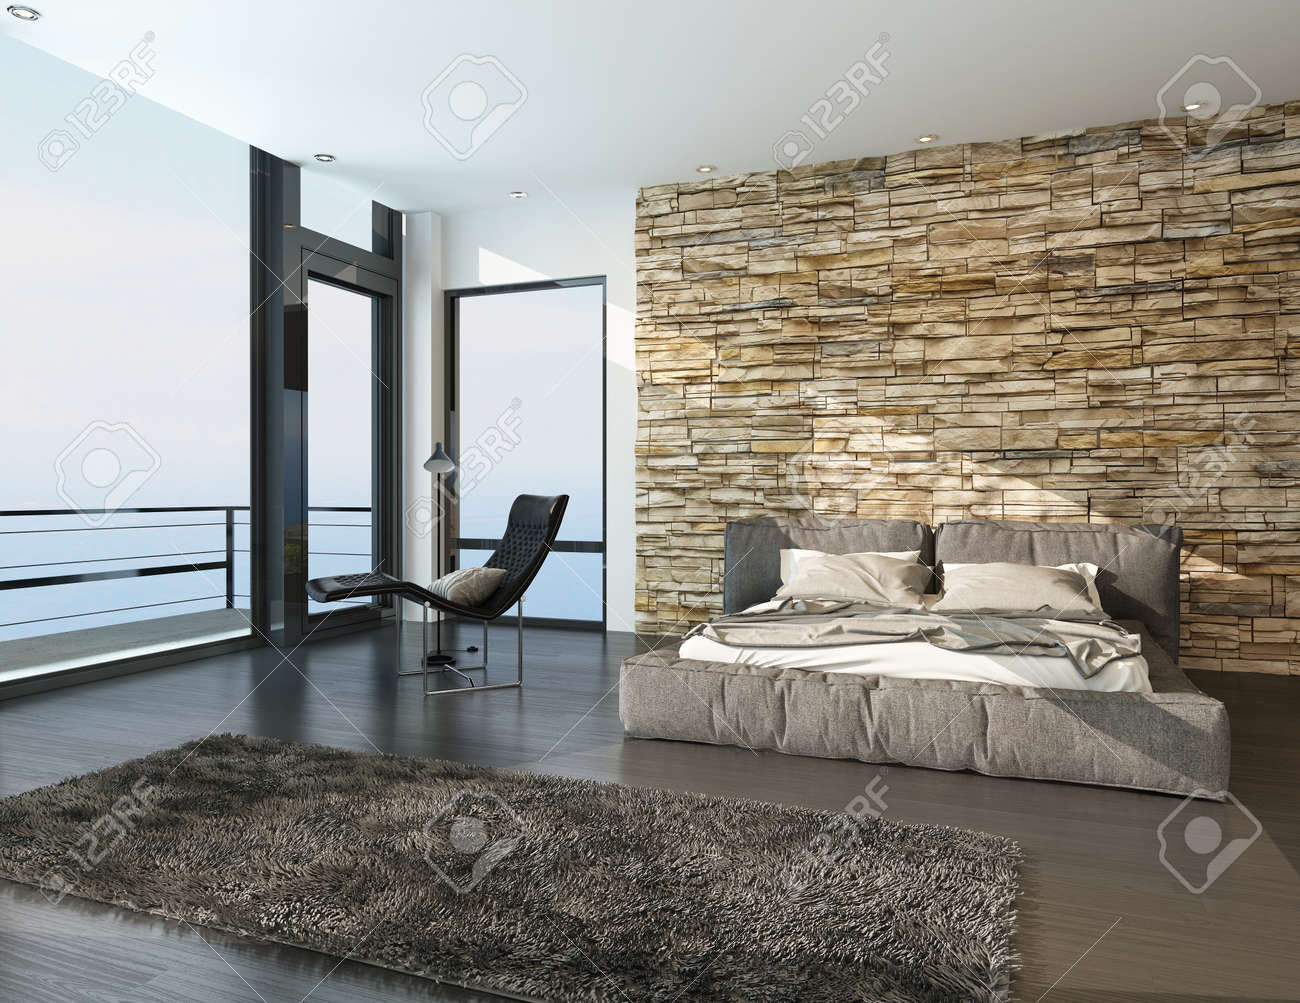 Modern Sunny Bedroom Overlooking The Ocean With A Balcony View Window Contemporary Double Bed